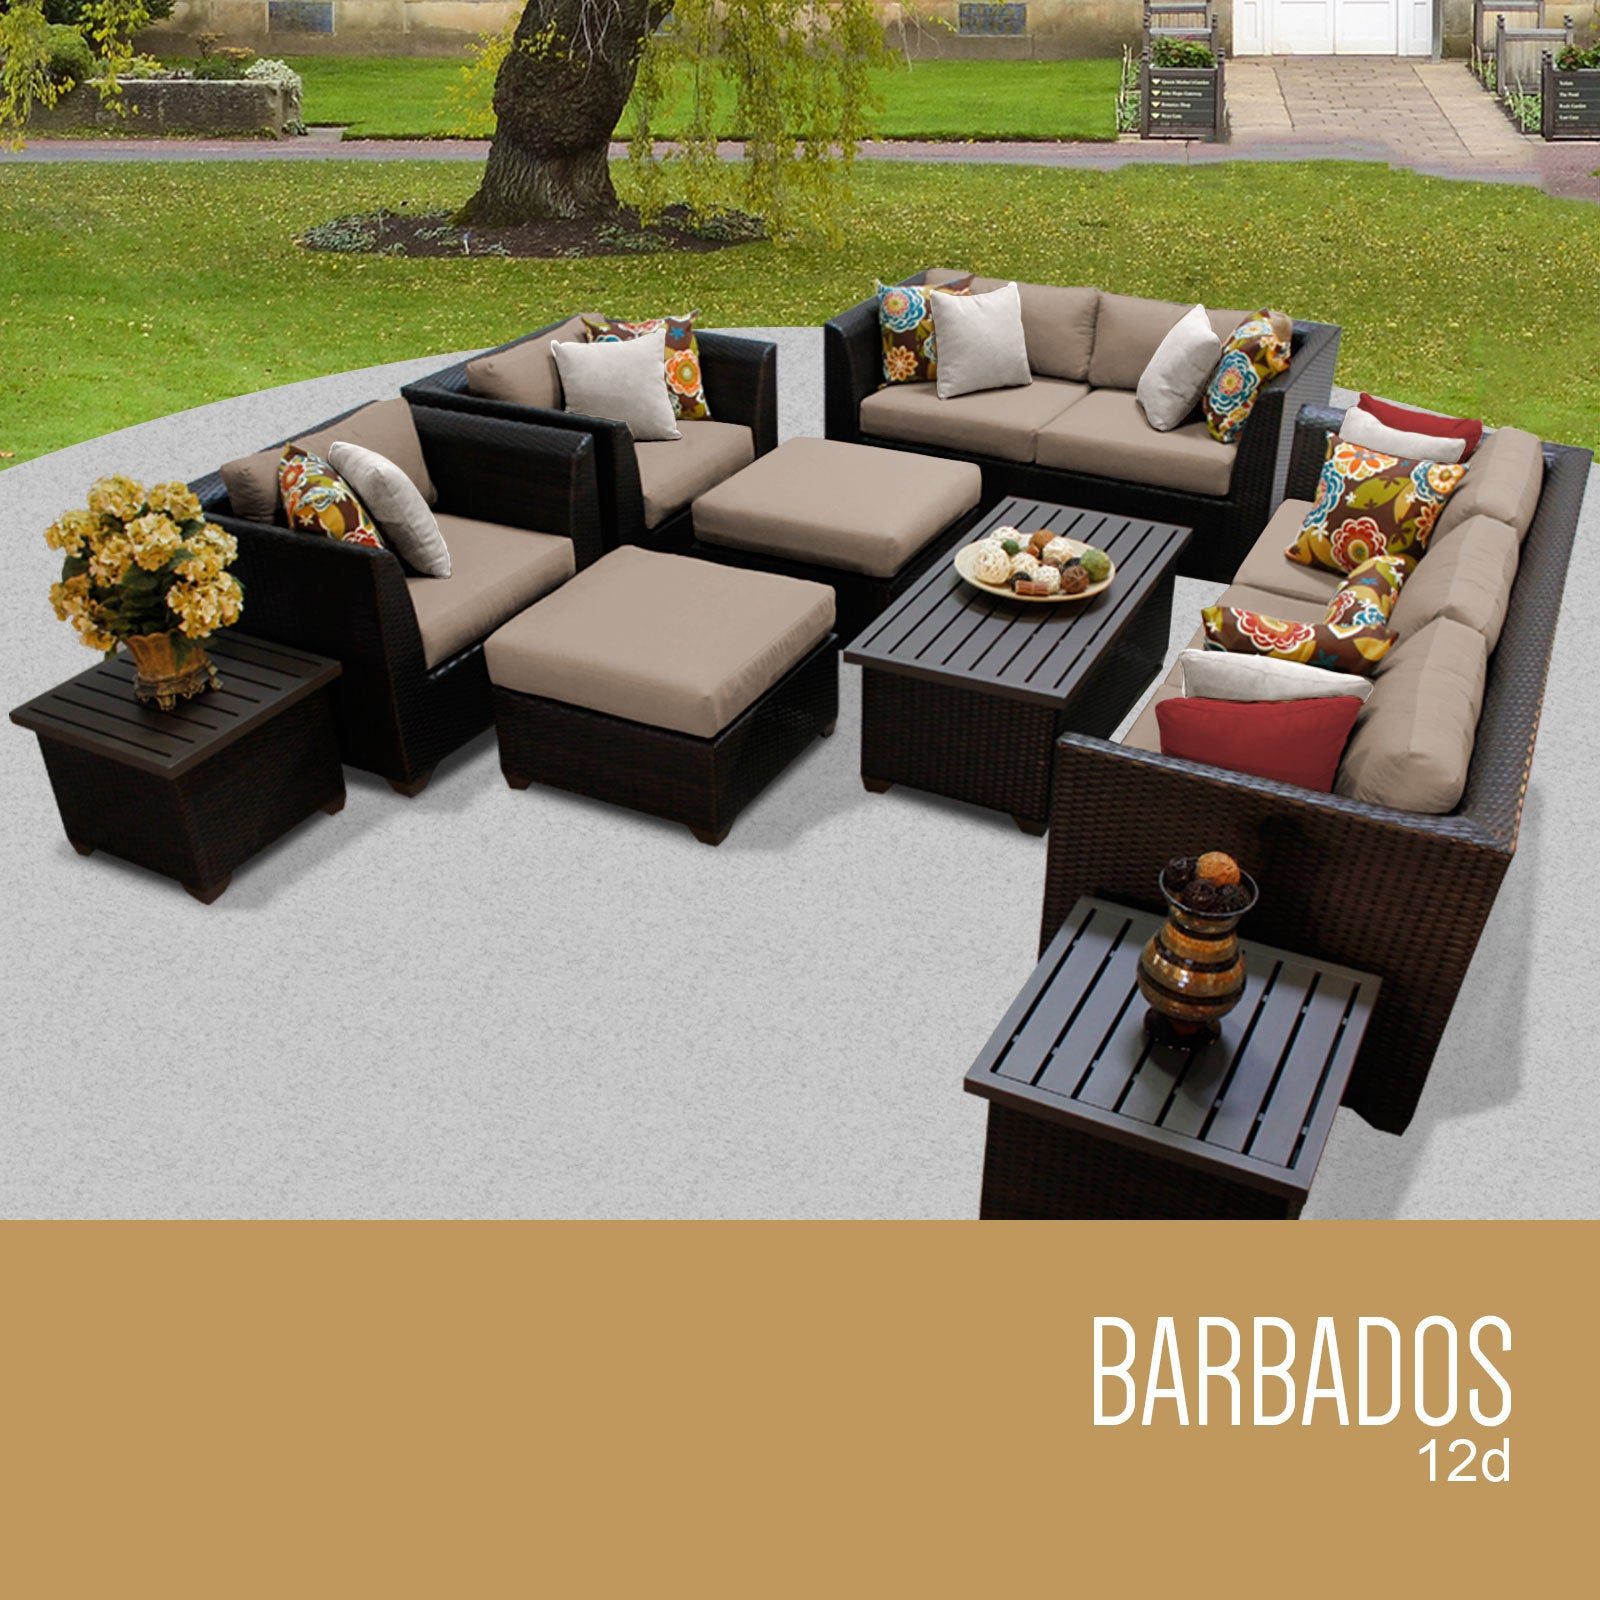 Lovely Shop Barbados 12 Piece Outdoor Wicker Patio Furniture Set 12d   Free  Shipping Today   Overstock.com   15269093